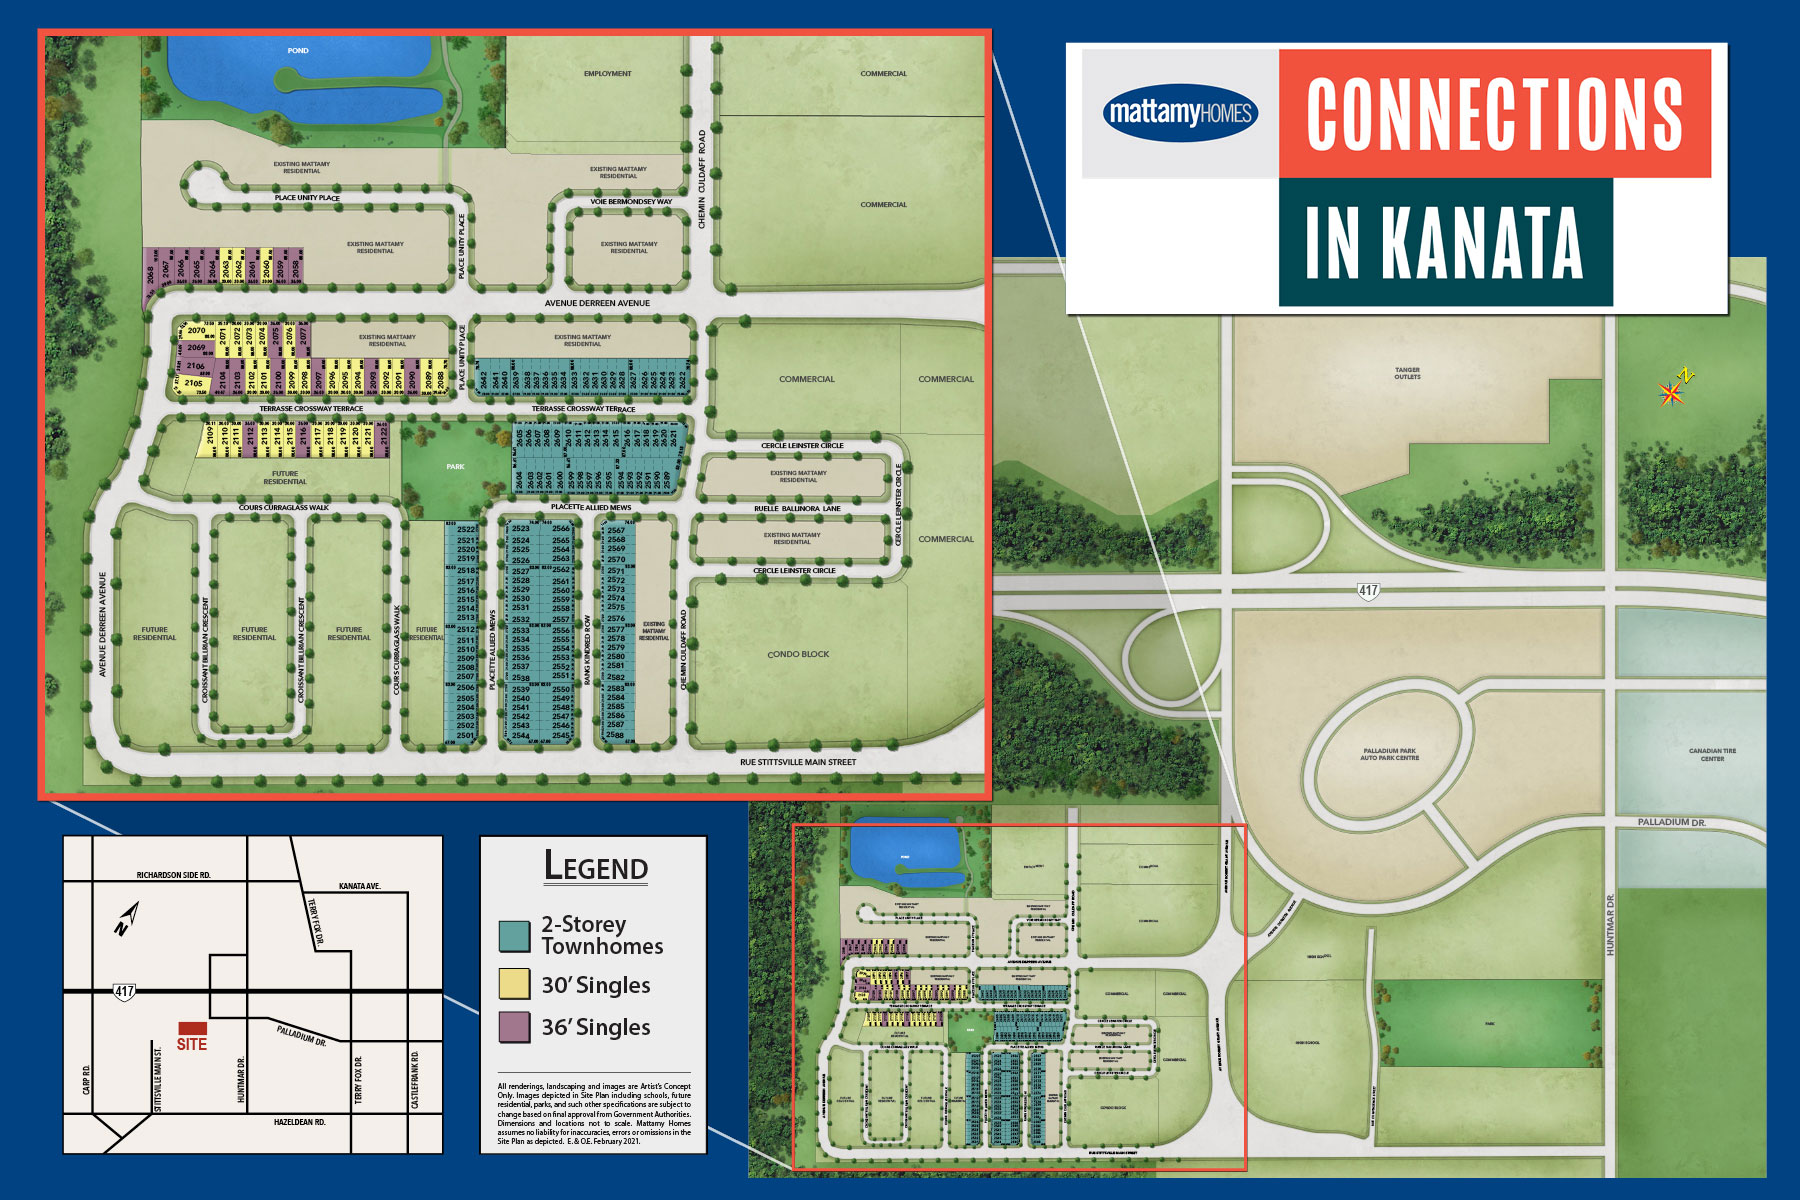 Connections In Kanata Lot Map in Kanata Ontario by Mattamy Homes